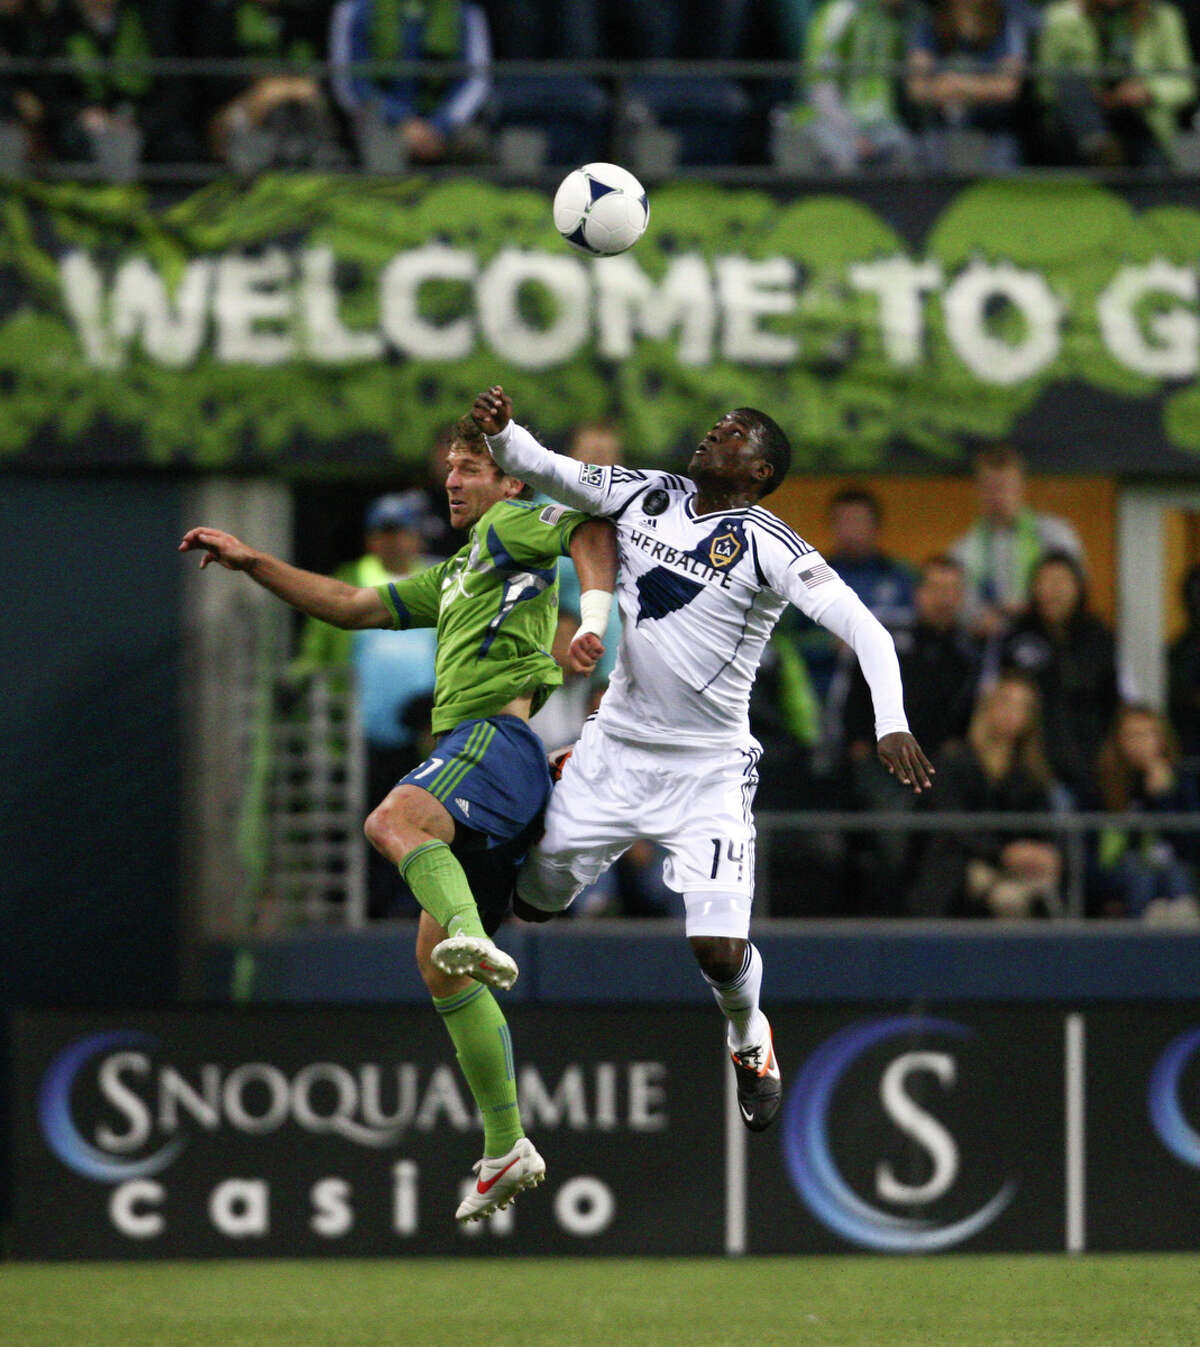 Sounder's midfielder Alex Caskey and Galaxy player Edson Buddle collide in the air.